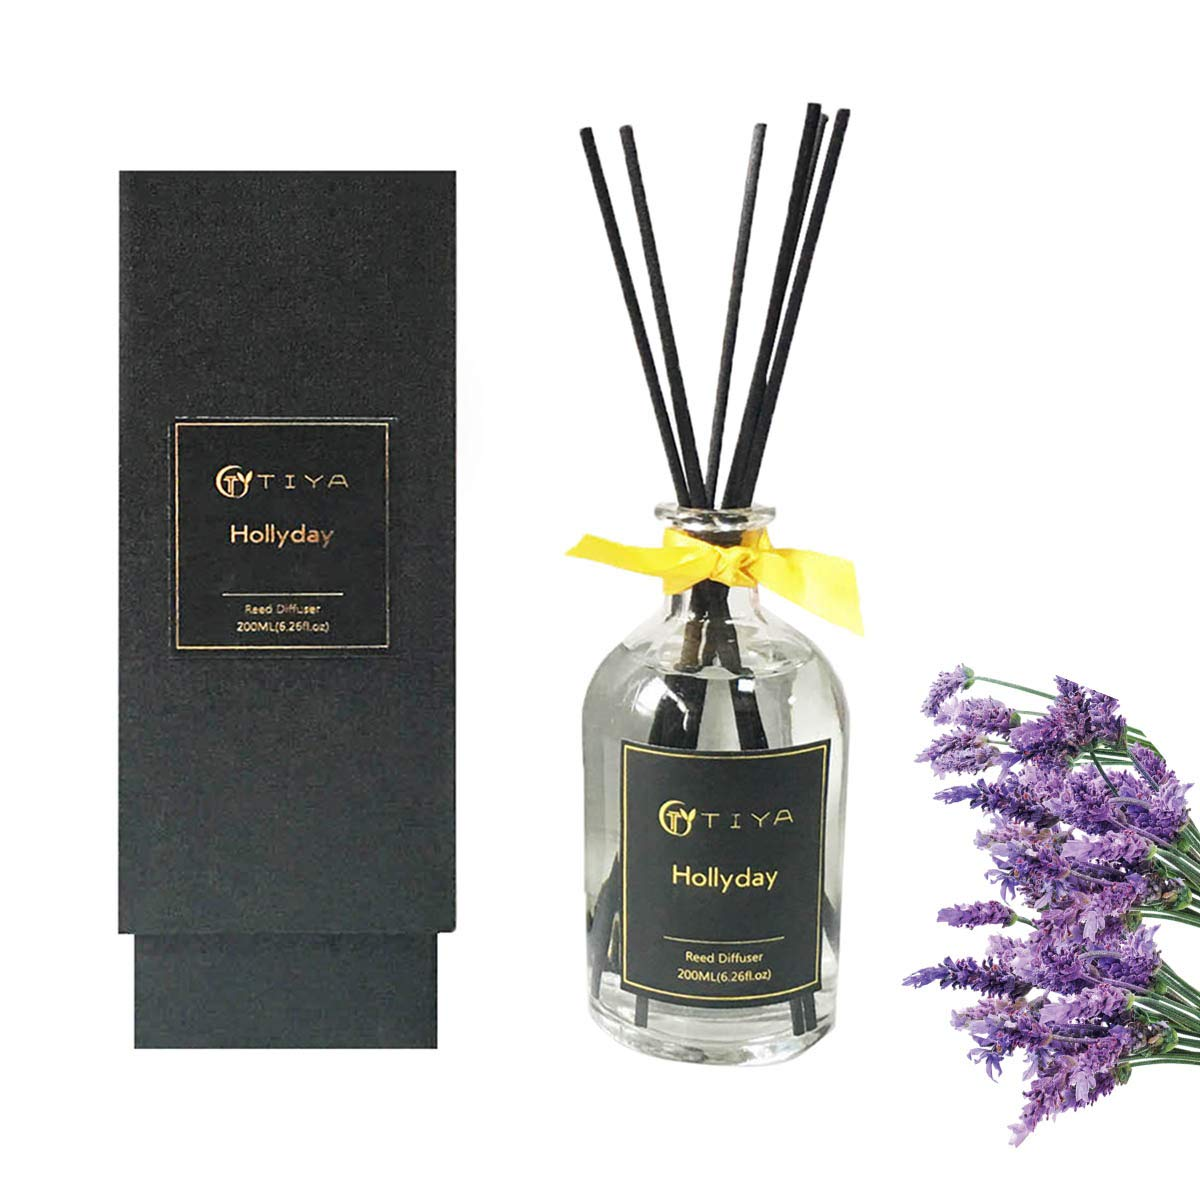 AROMATICSTORE Lavender and Lemongrass Reed Diffuser, 200 ML Essential Oil Aromatherapy Fragrance with Reed Sticks